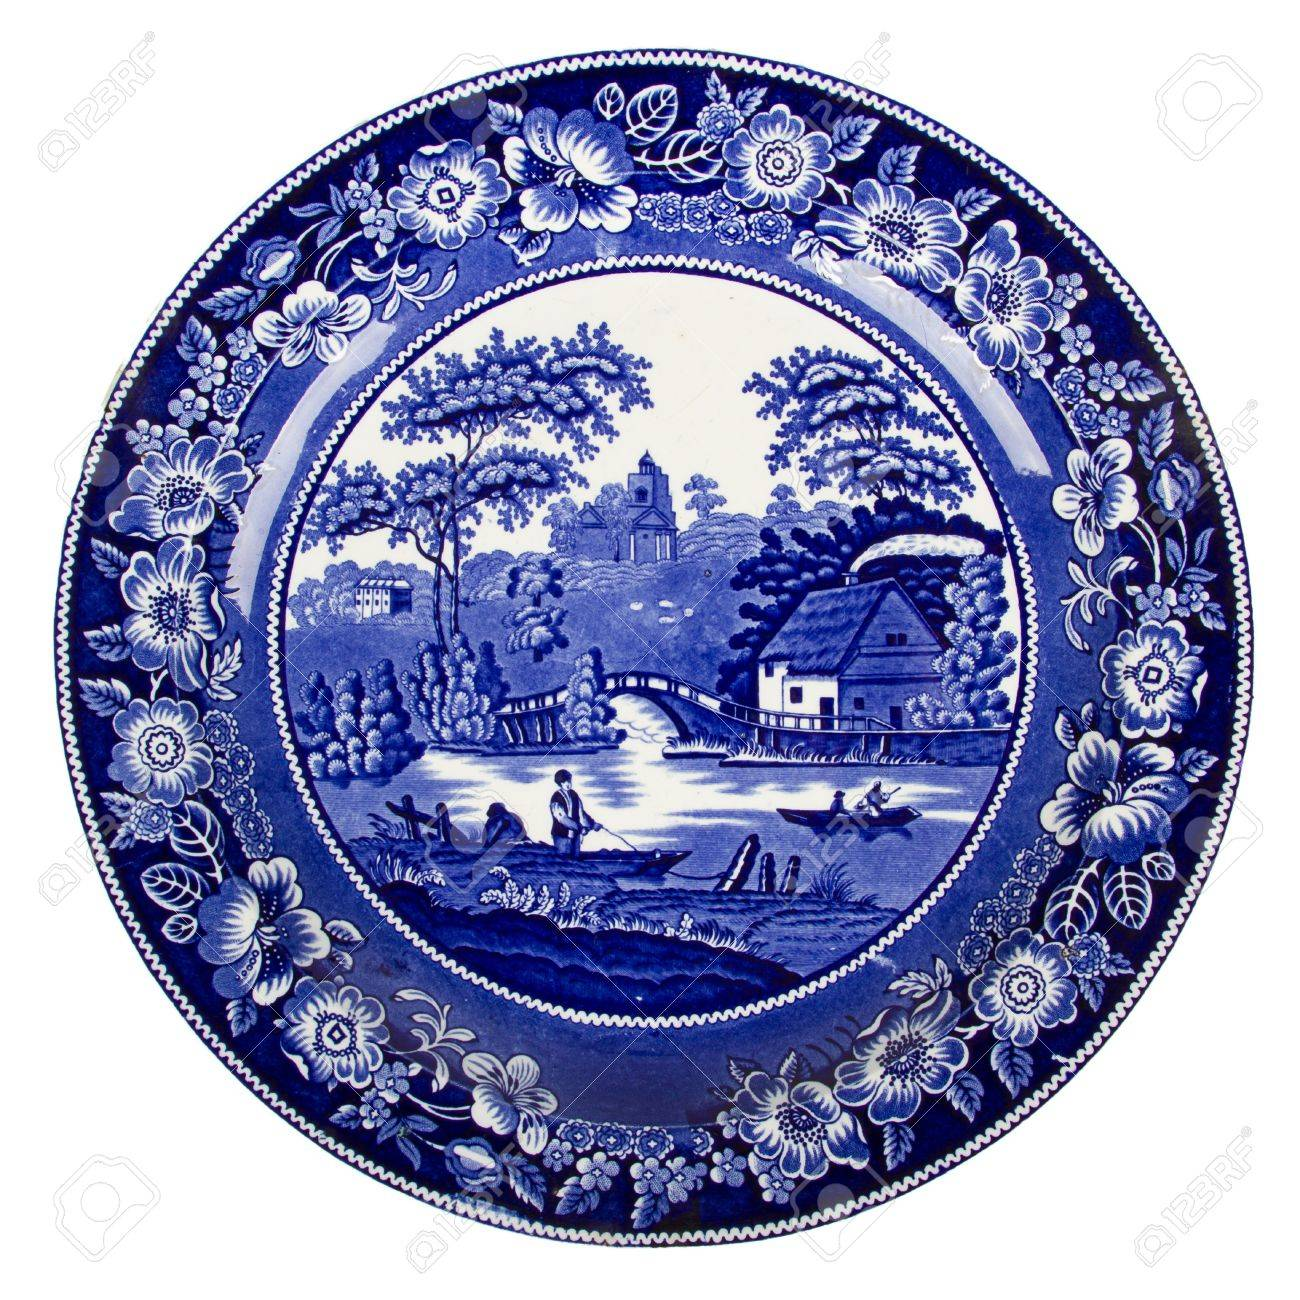 Very old dutch plate isolated on a white background Stock Photo - 16008002